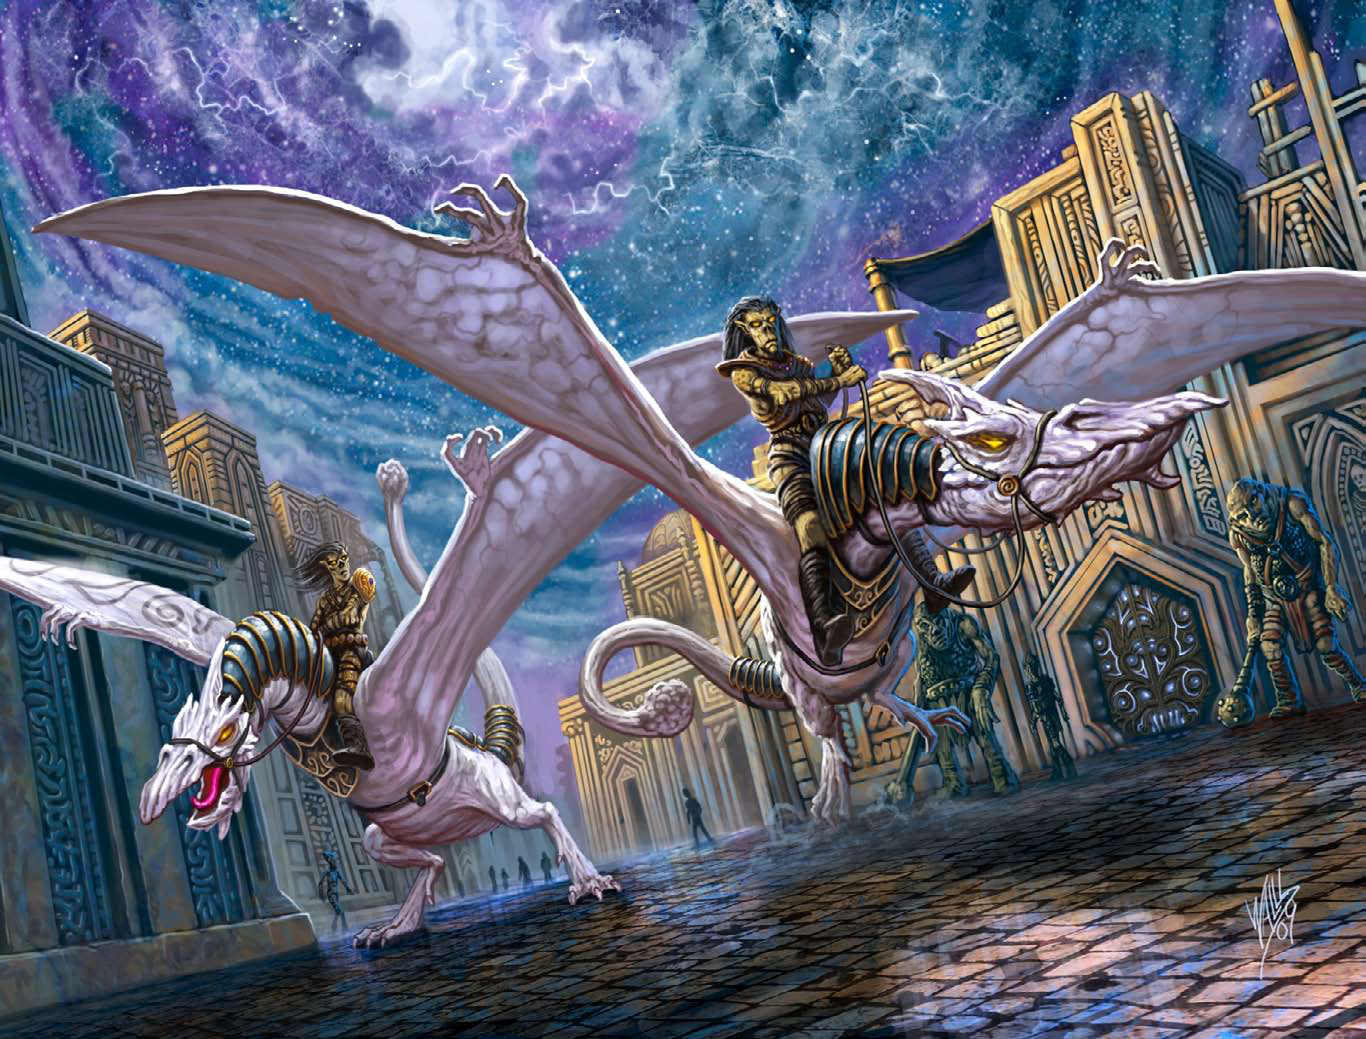 astral whitewing Githyanki a cavallo di alibianche astali, fomorian sullo sfondo- by Frank Wall Dungeon Magazine #167 (2009-06) © Wizards of the Coast & Hasbro